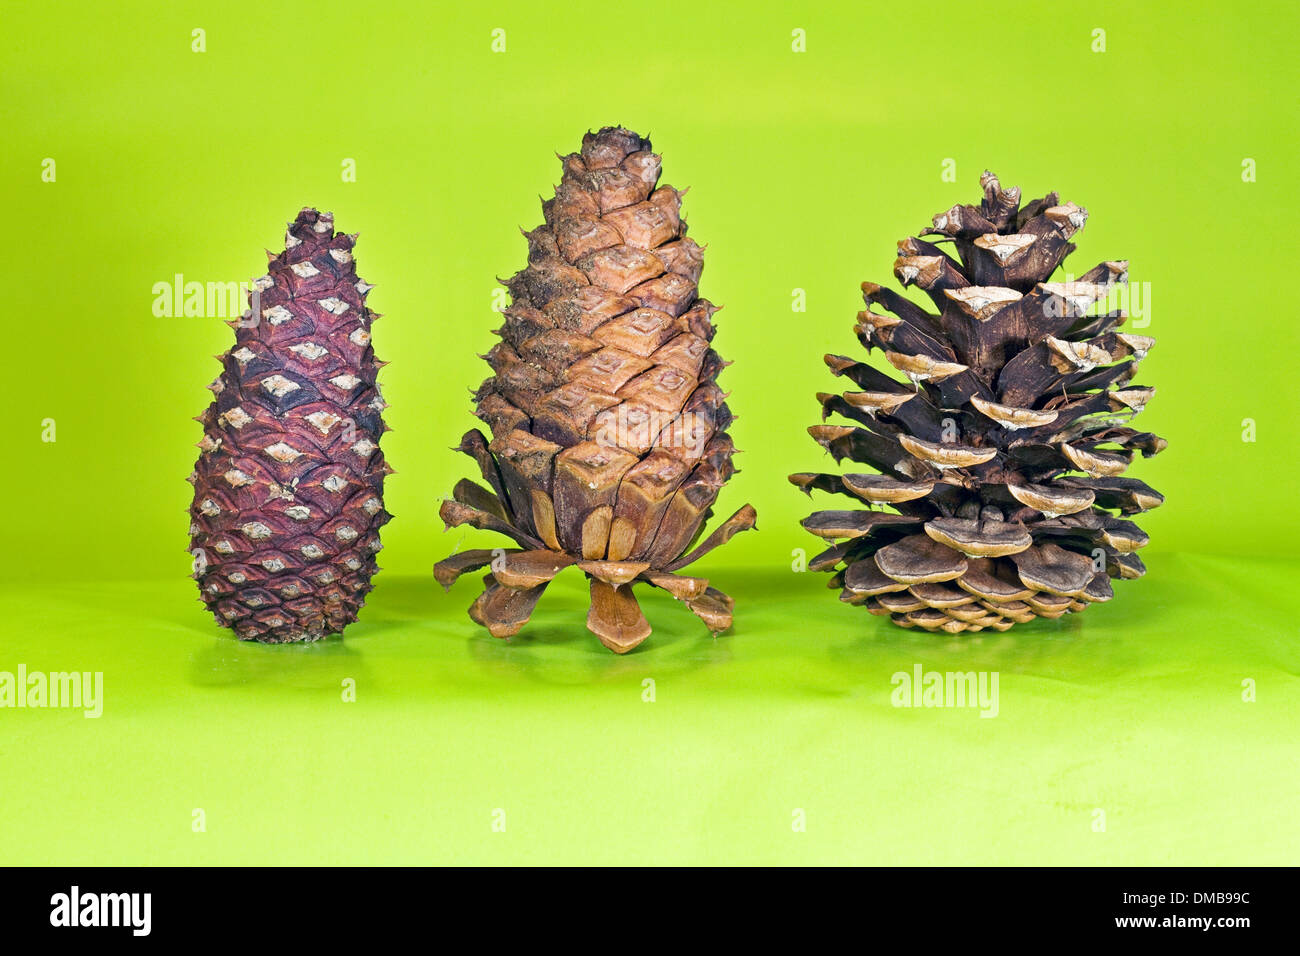 Three states of a ponderosa pine cone in seeding mode - Stock Image